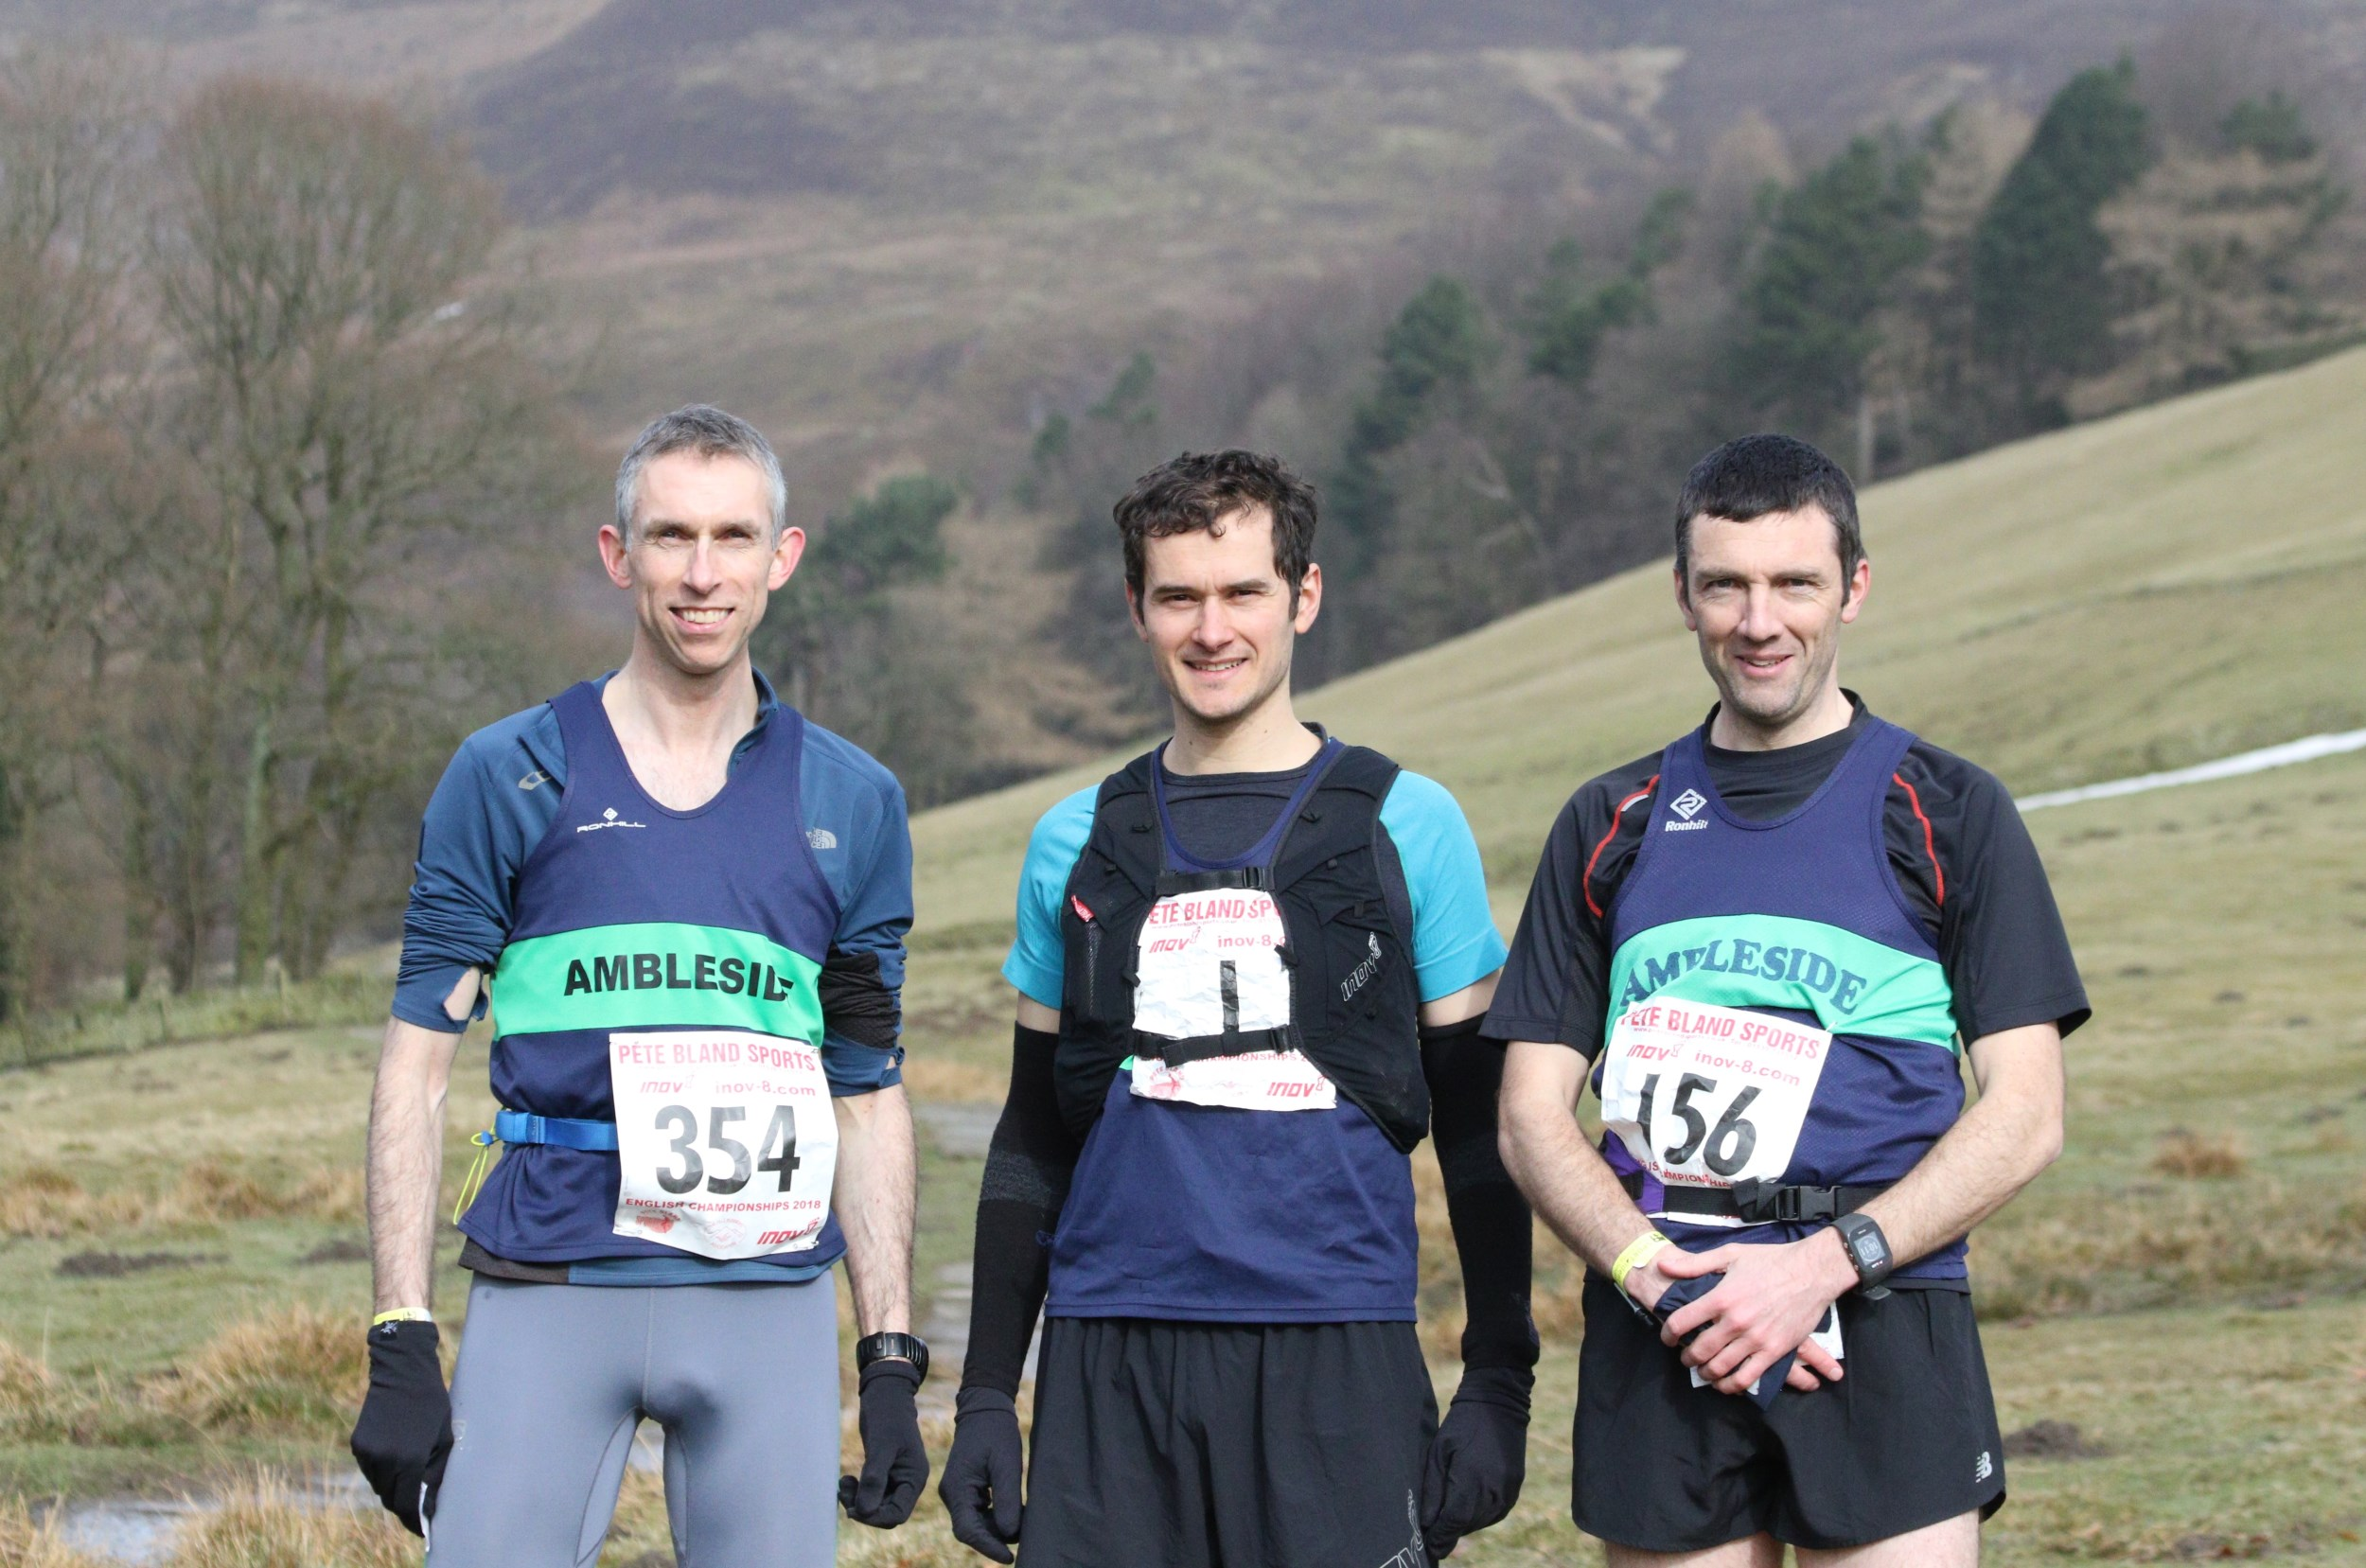 2018 03 11 Edale Skyline English Championship race 5 Edale Skyline 2018: Race Report